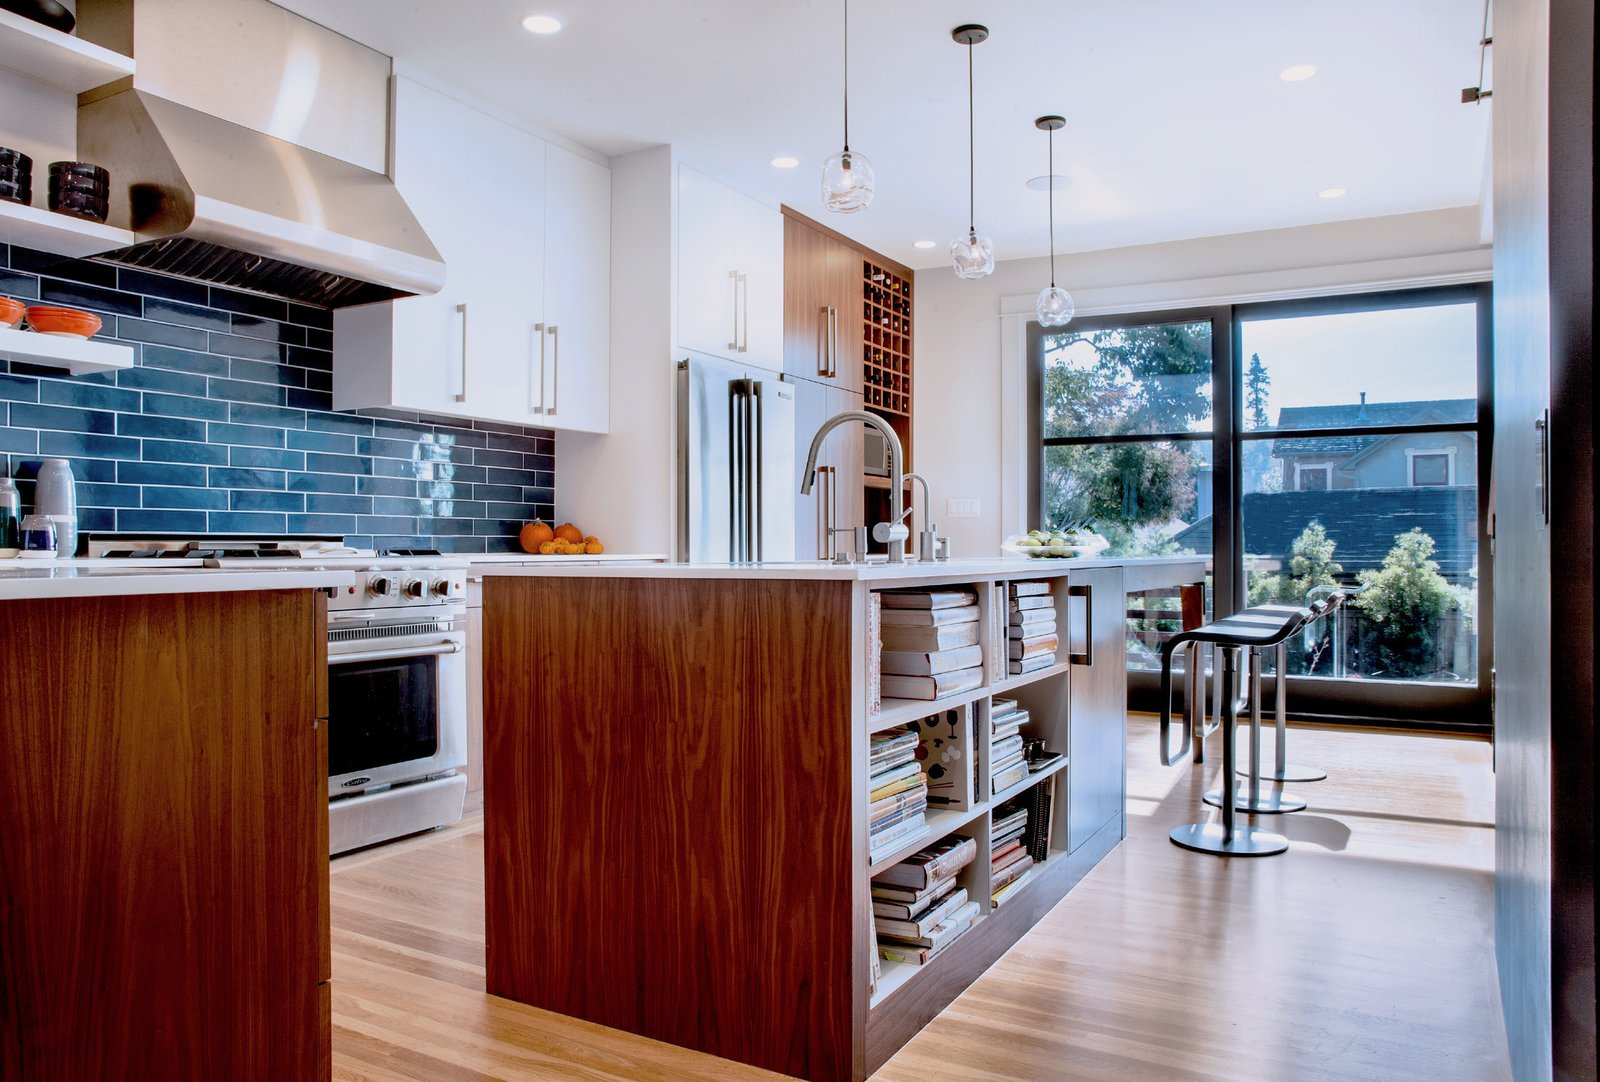 A first priority for the kitchen was sunlight: to maximize exposure, Mitchell Holladay Architects demolished as many walls as possible without compromising the home's structural integrity. LEM Piston stools by Shin and Tomoko Azumi from Design Within Reach flank a custom walnut kitchen island; sculptural hand-blown glass pendants from John Pomp Studios hang overhead.  Renovated Kitchens We Love by Zachary Edelson from A Fresh Kitchen Update for the Family That Cooks Together